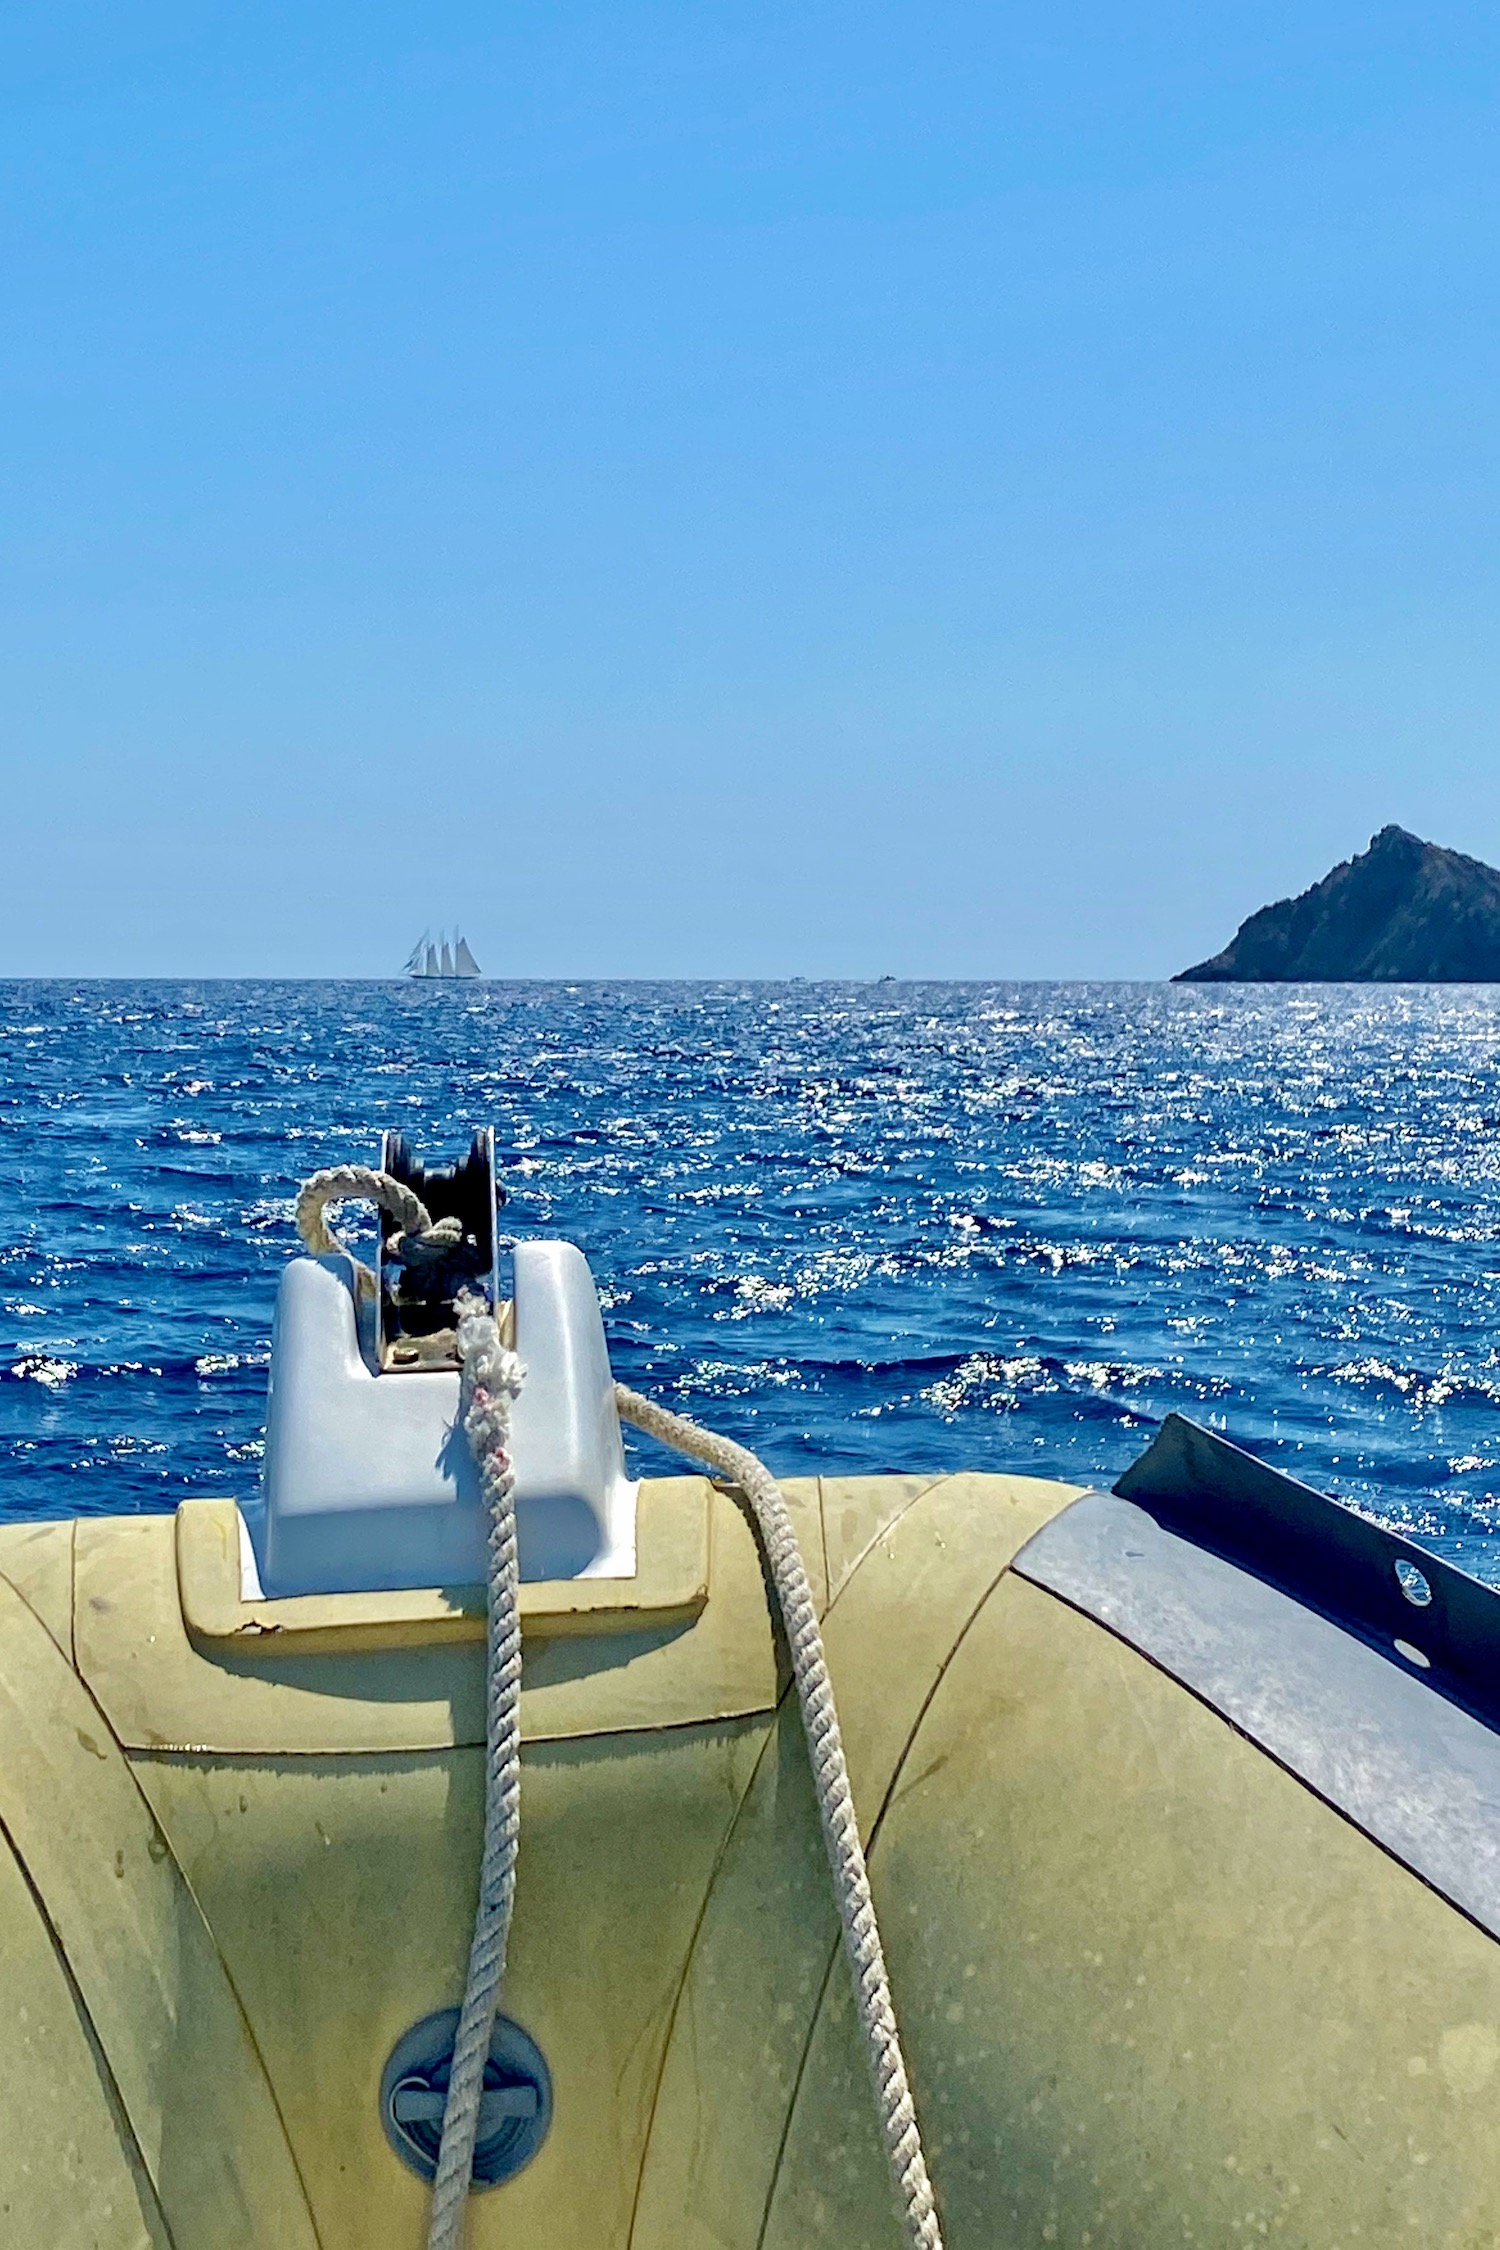 driving a boat on the mediterranean